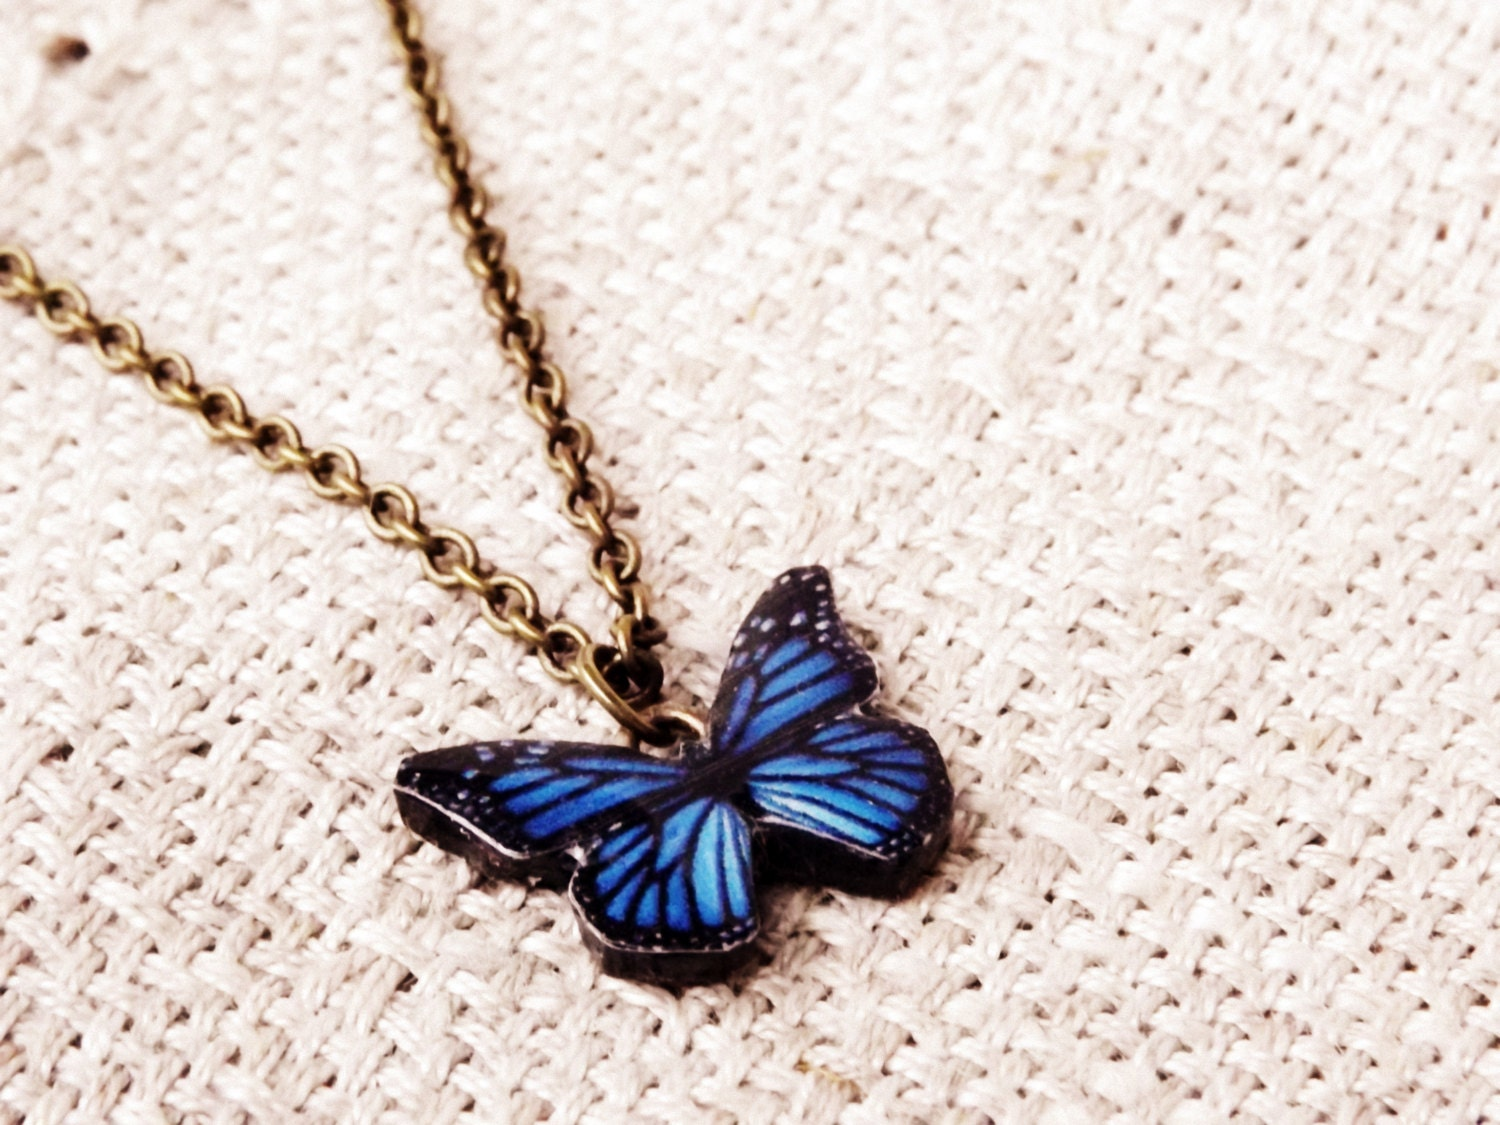 Stylish jewelry Open front necklace BLUE BUTTERFLY NECKLACE Butterfly necklace Aluminium wire necklace Jean blue jewelry